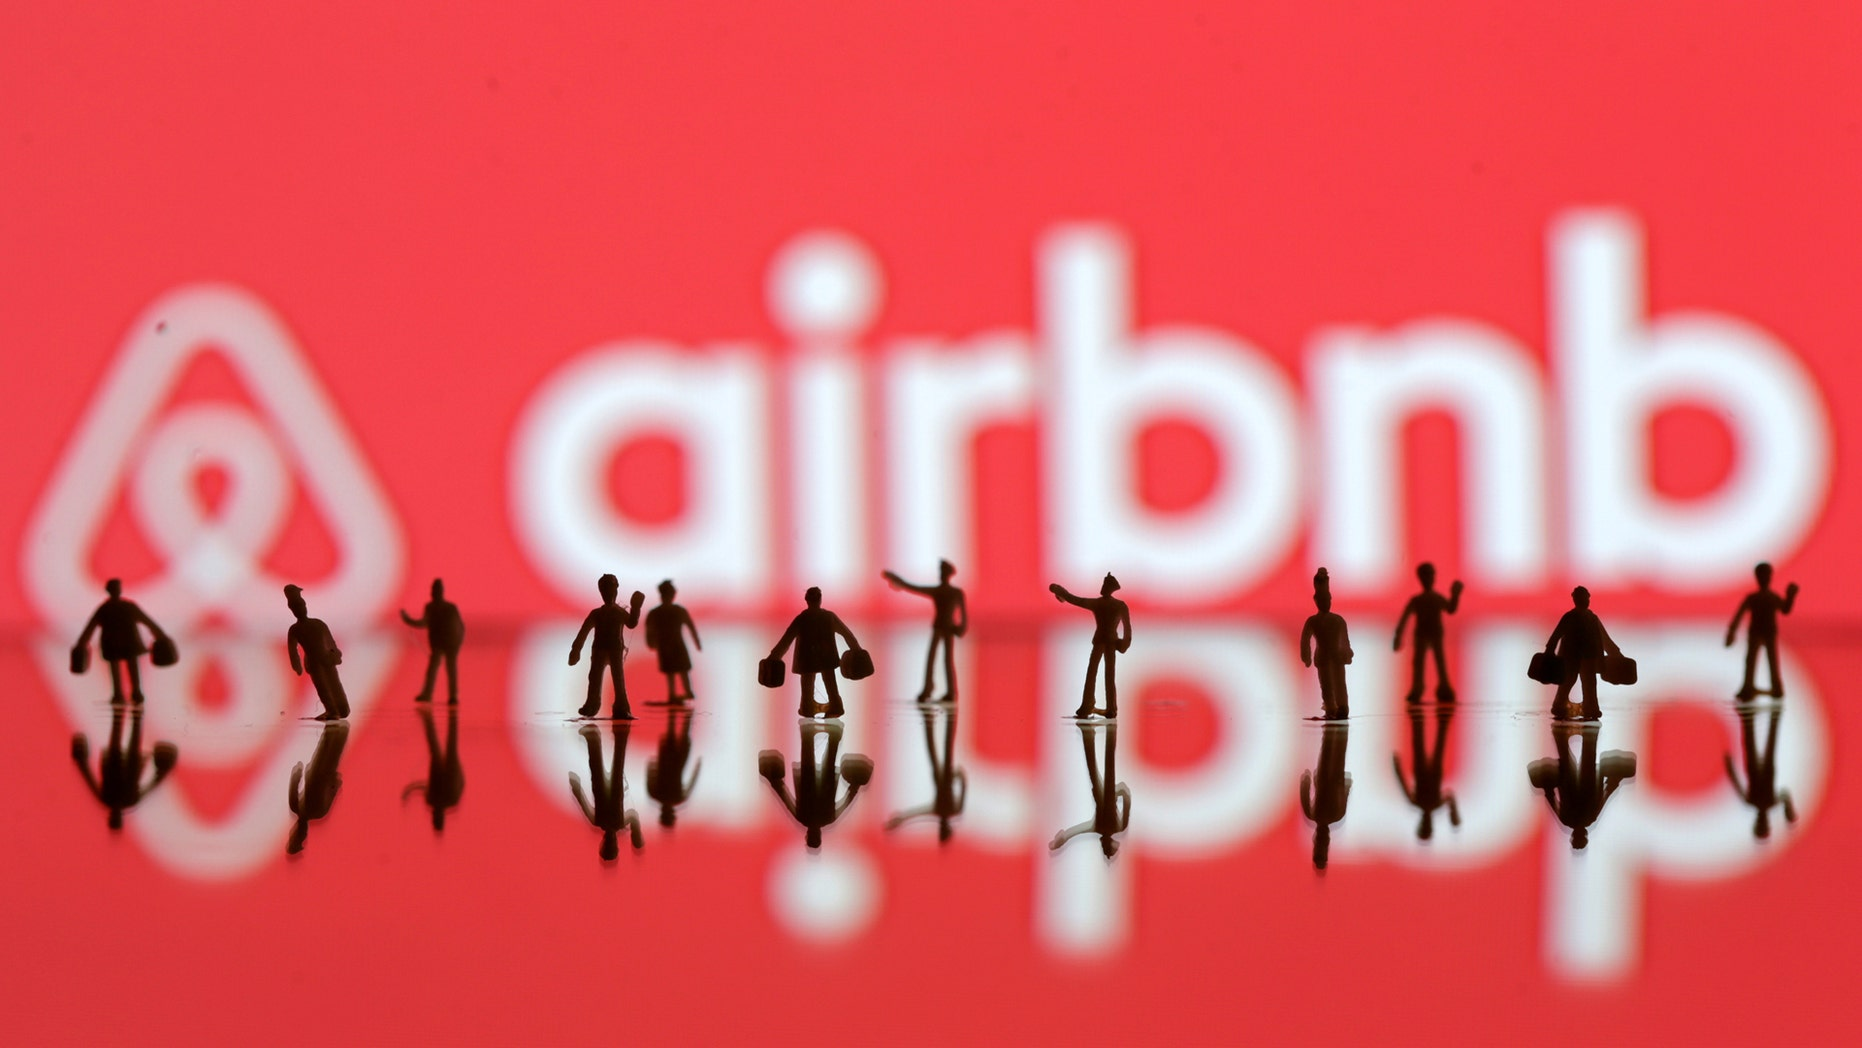 File photo: A 3D printed people's models are seen in front of a displayed Airbnb logo in this illustration taken, June 8, 2016. (REUTERS/Dado Ruvic)